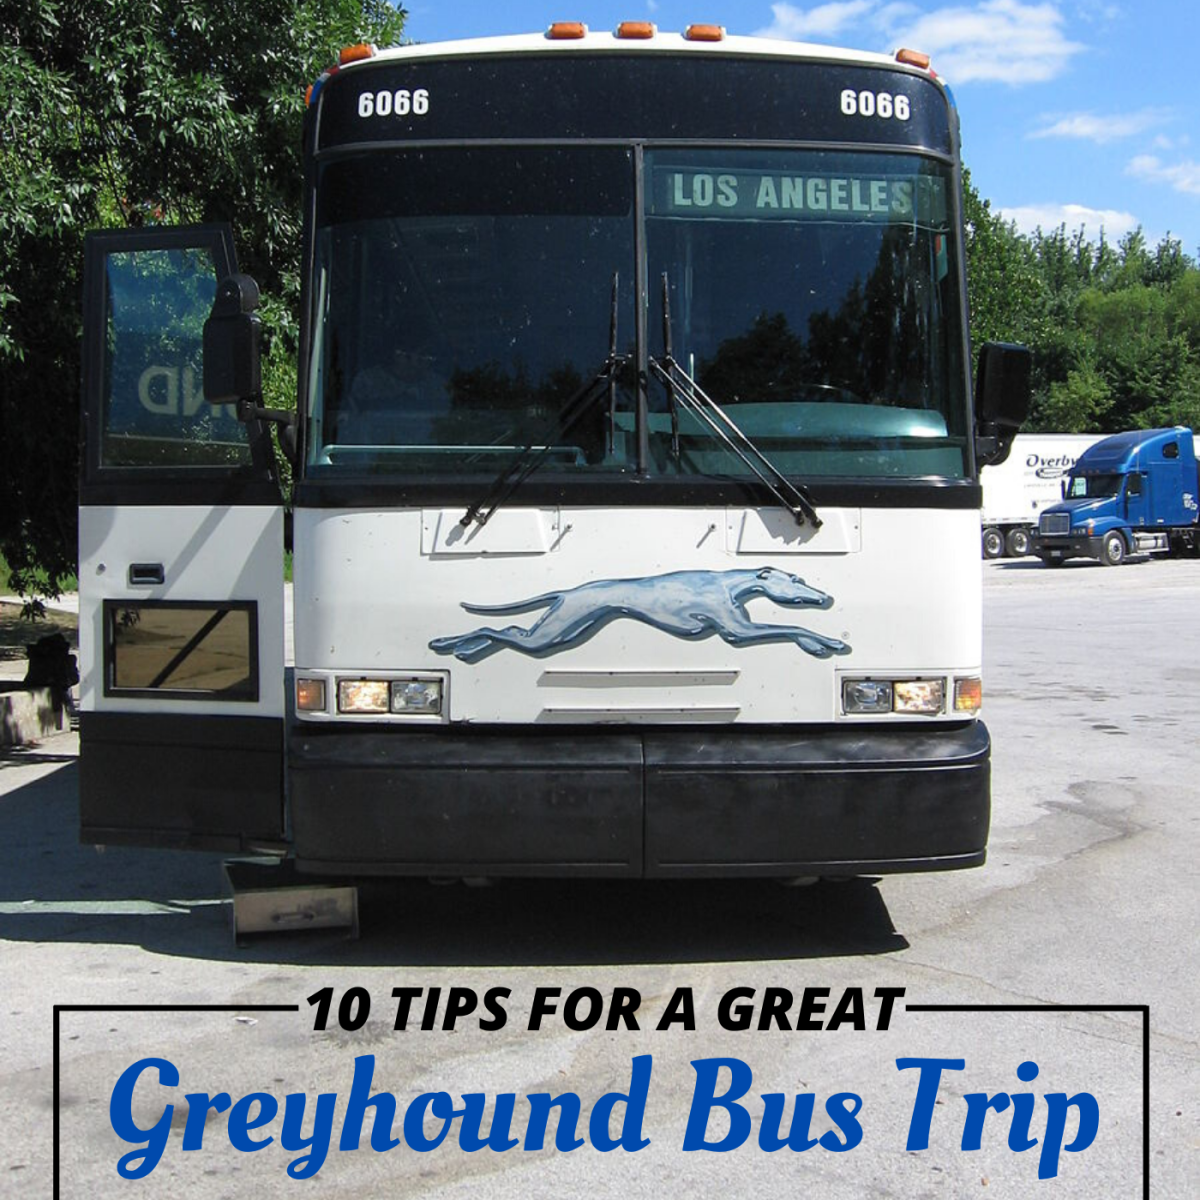 Abide by these 10 suggestions, and you'll enjoy a safe and easy bus trip on Greyhound.